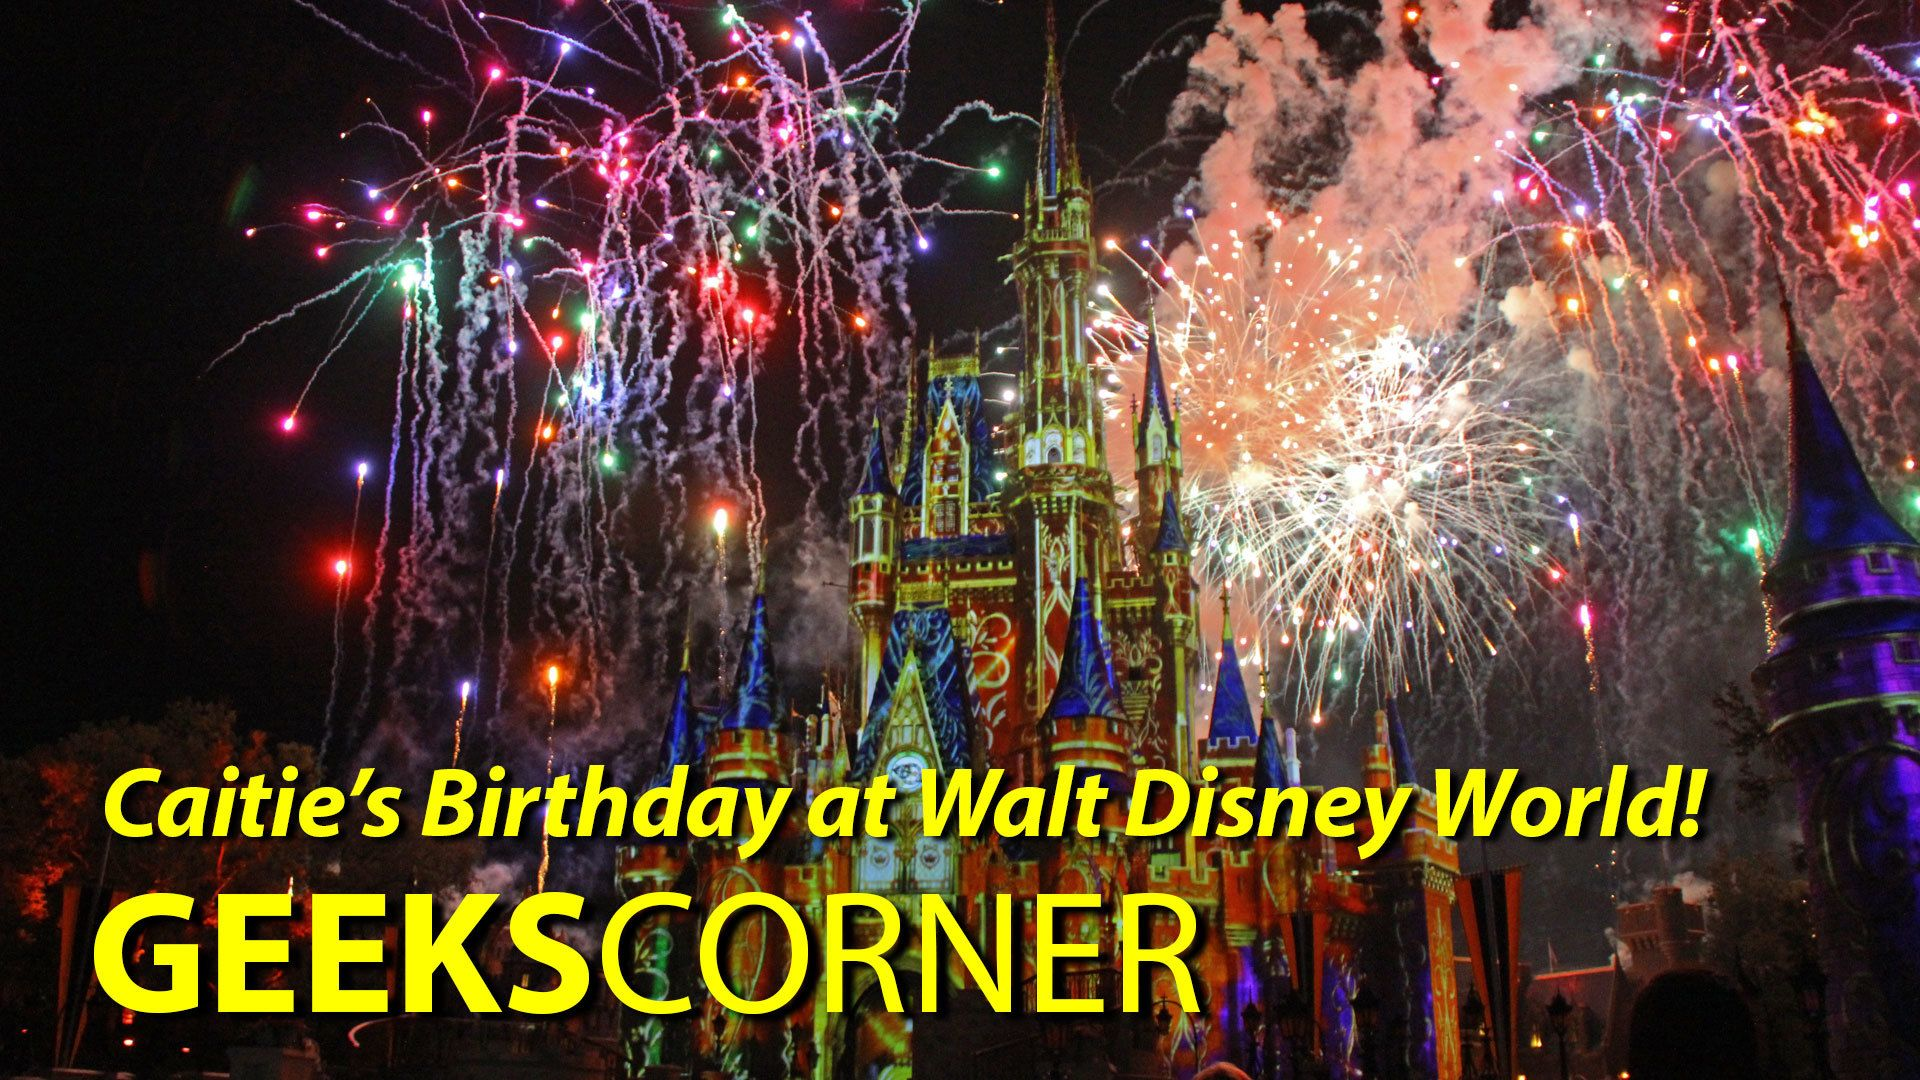 Caitie's Birthday at Walt Disney World! - GEEKS CORNER - Episode 804